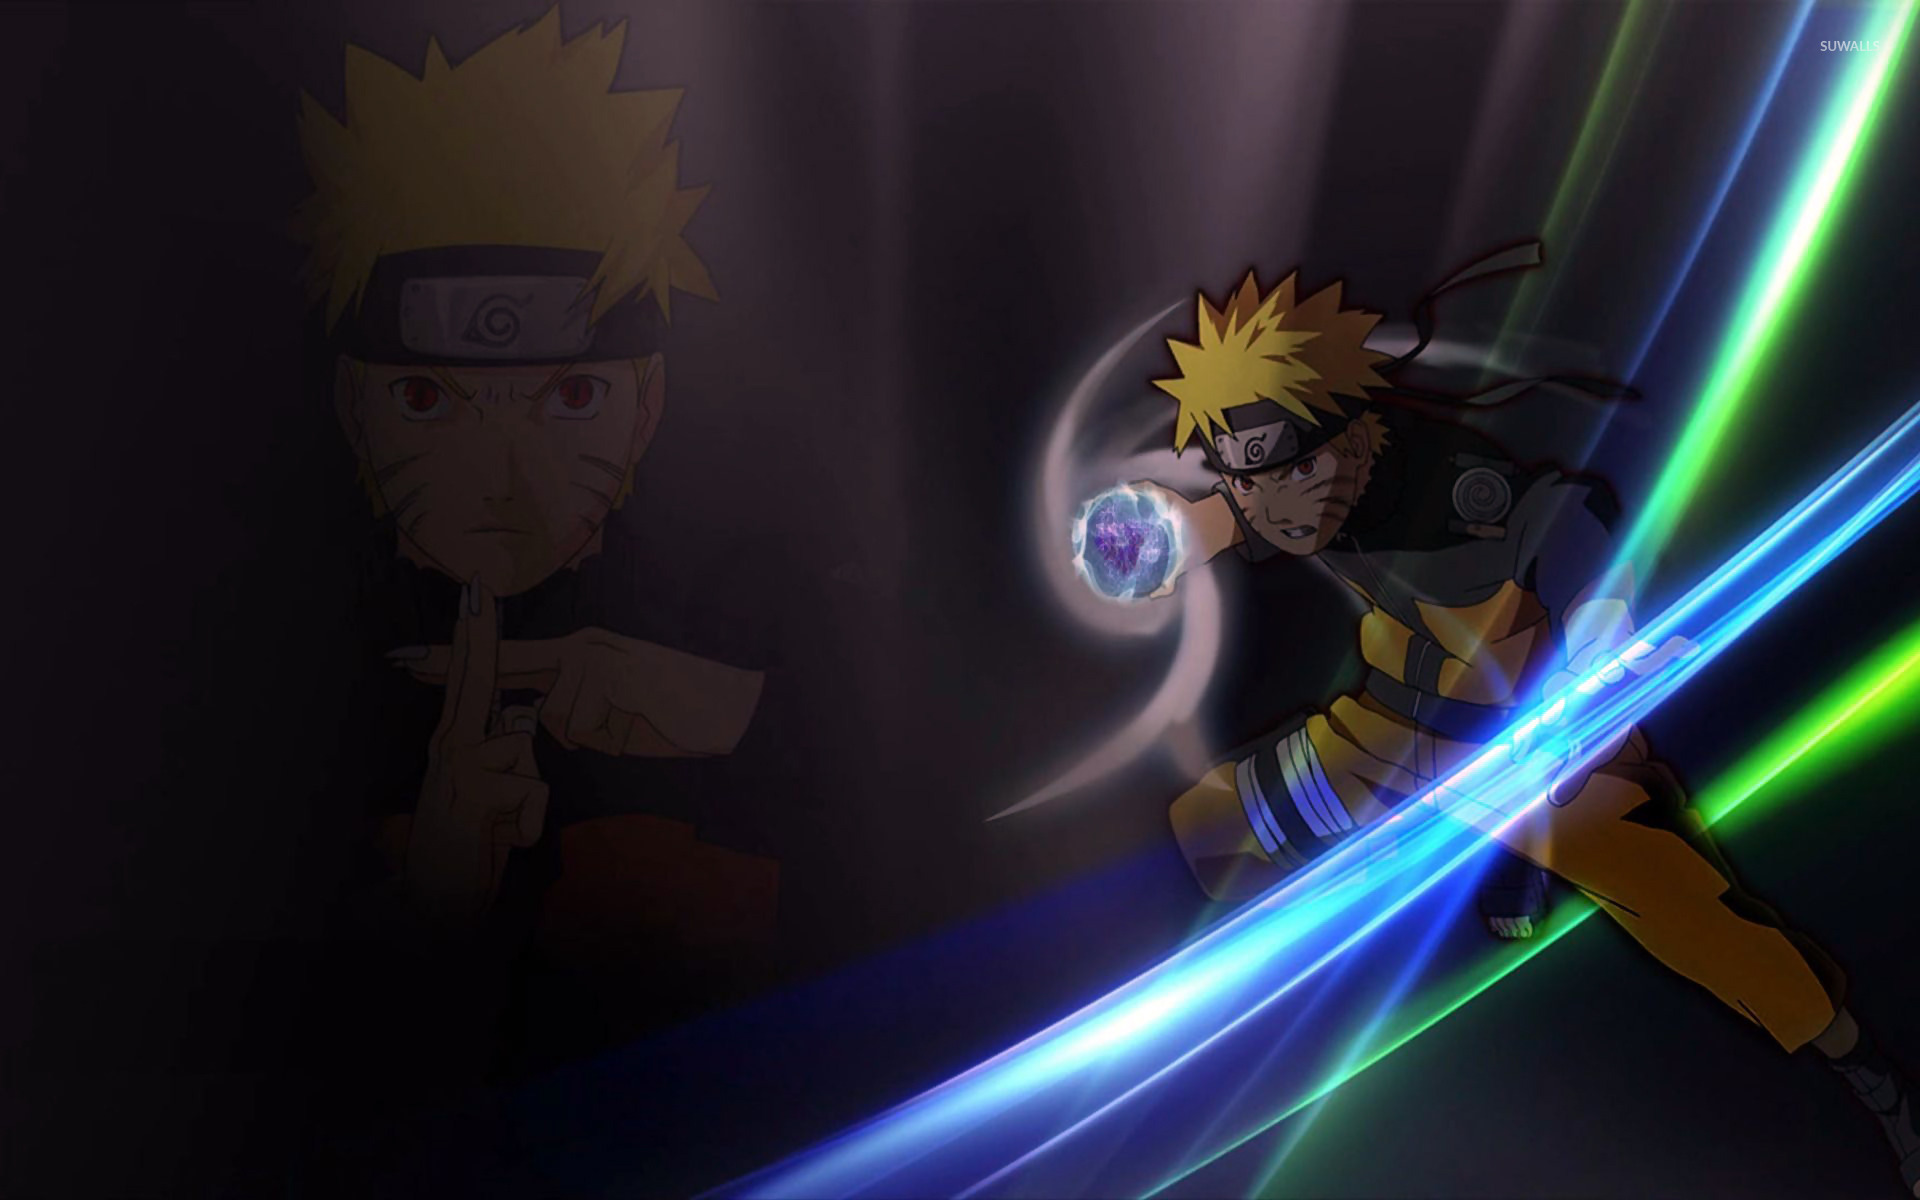 naruto wallpapers for windows 7 #6